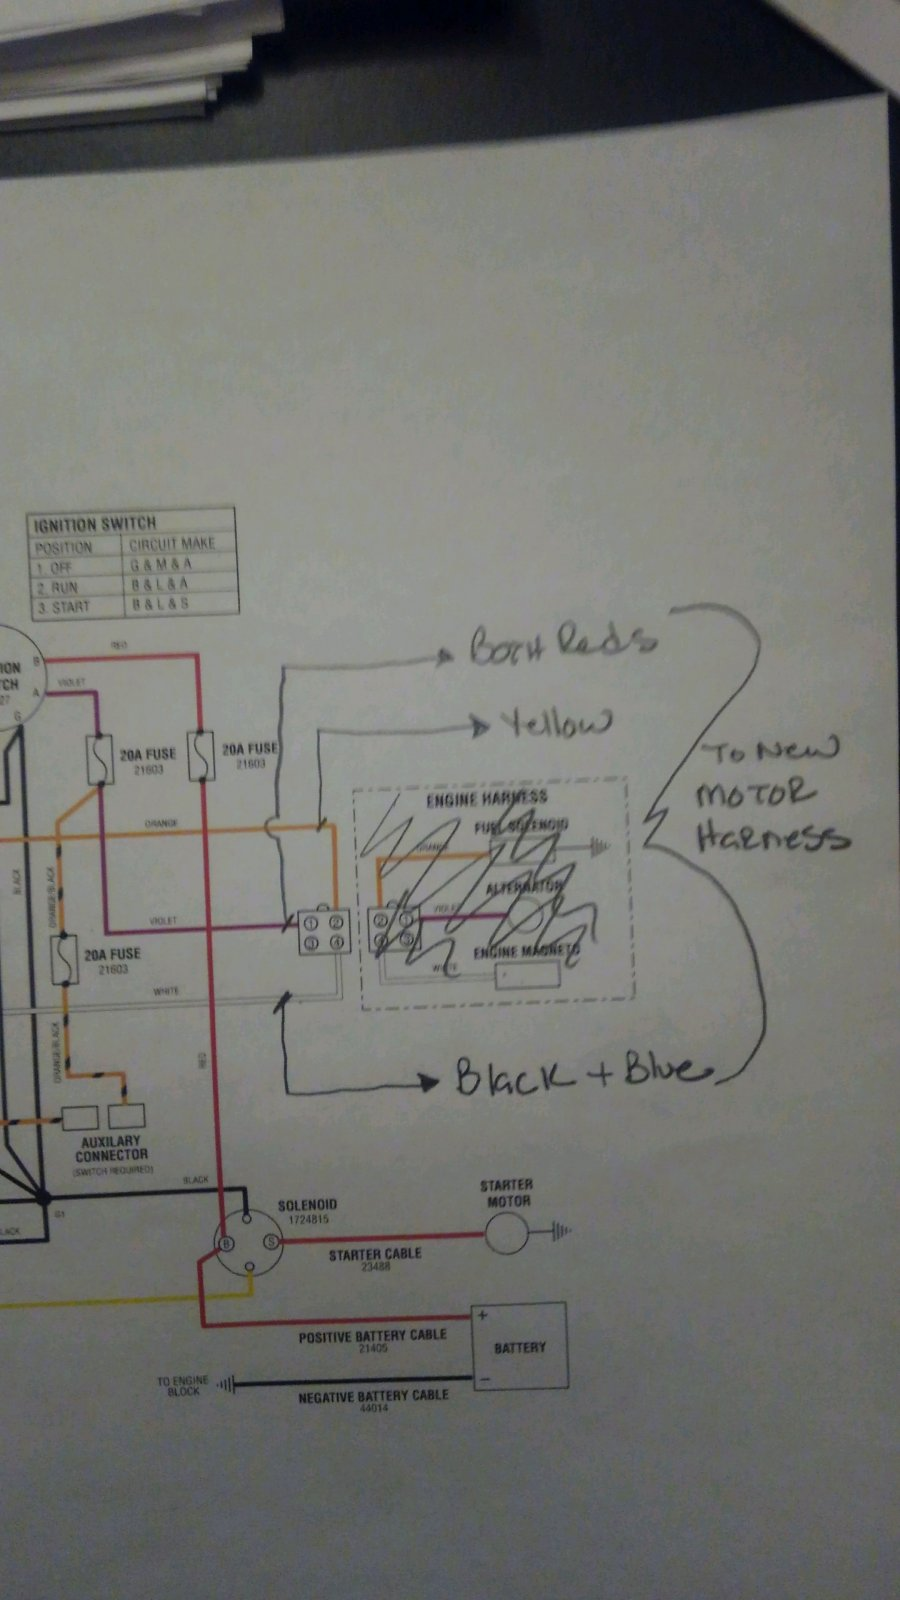 hight resolution of predator wiring u jpg